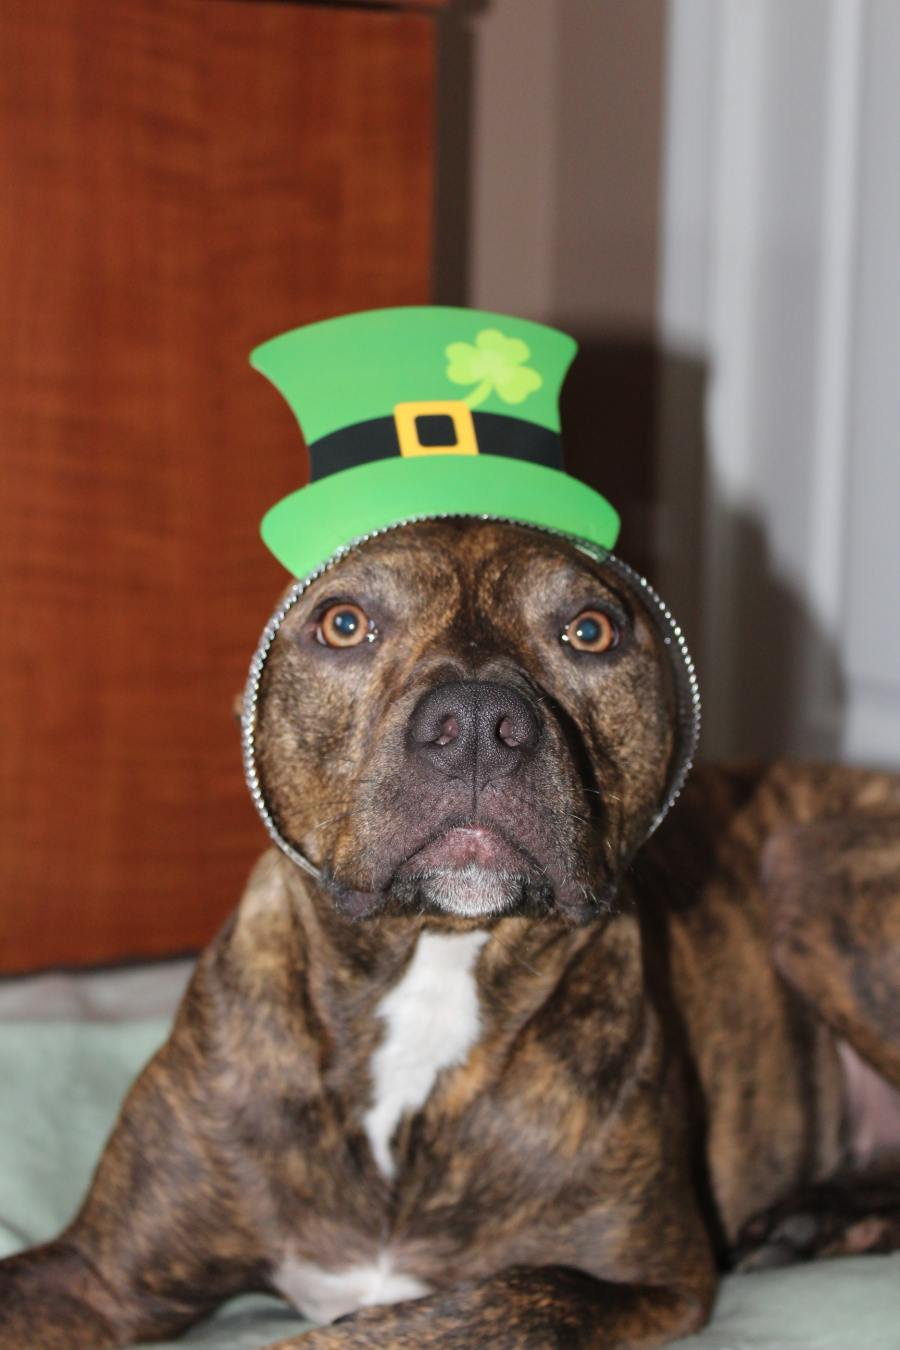 St. Patty's Day: Celebrate as a family